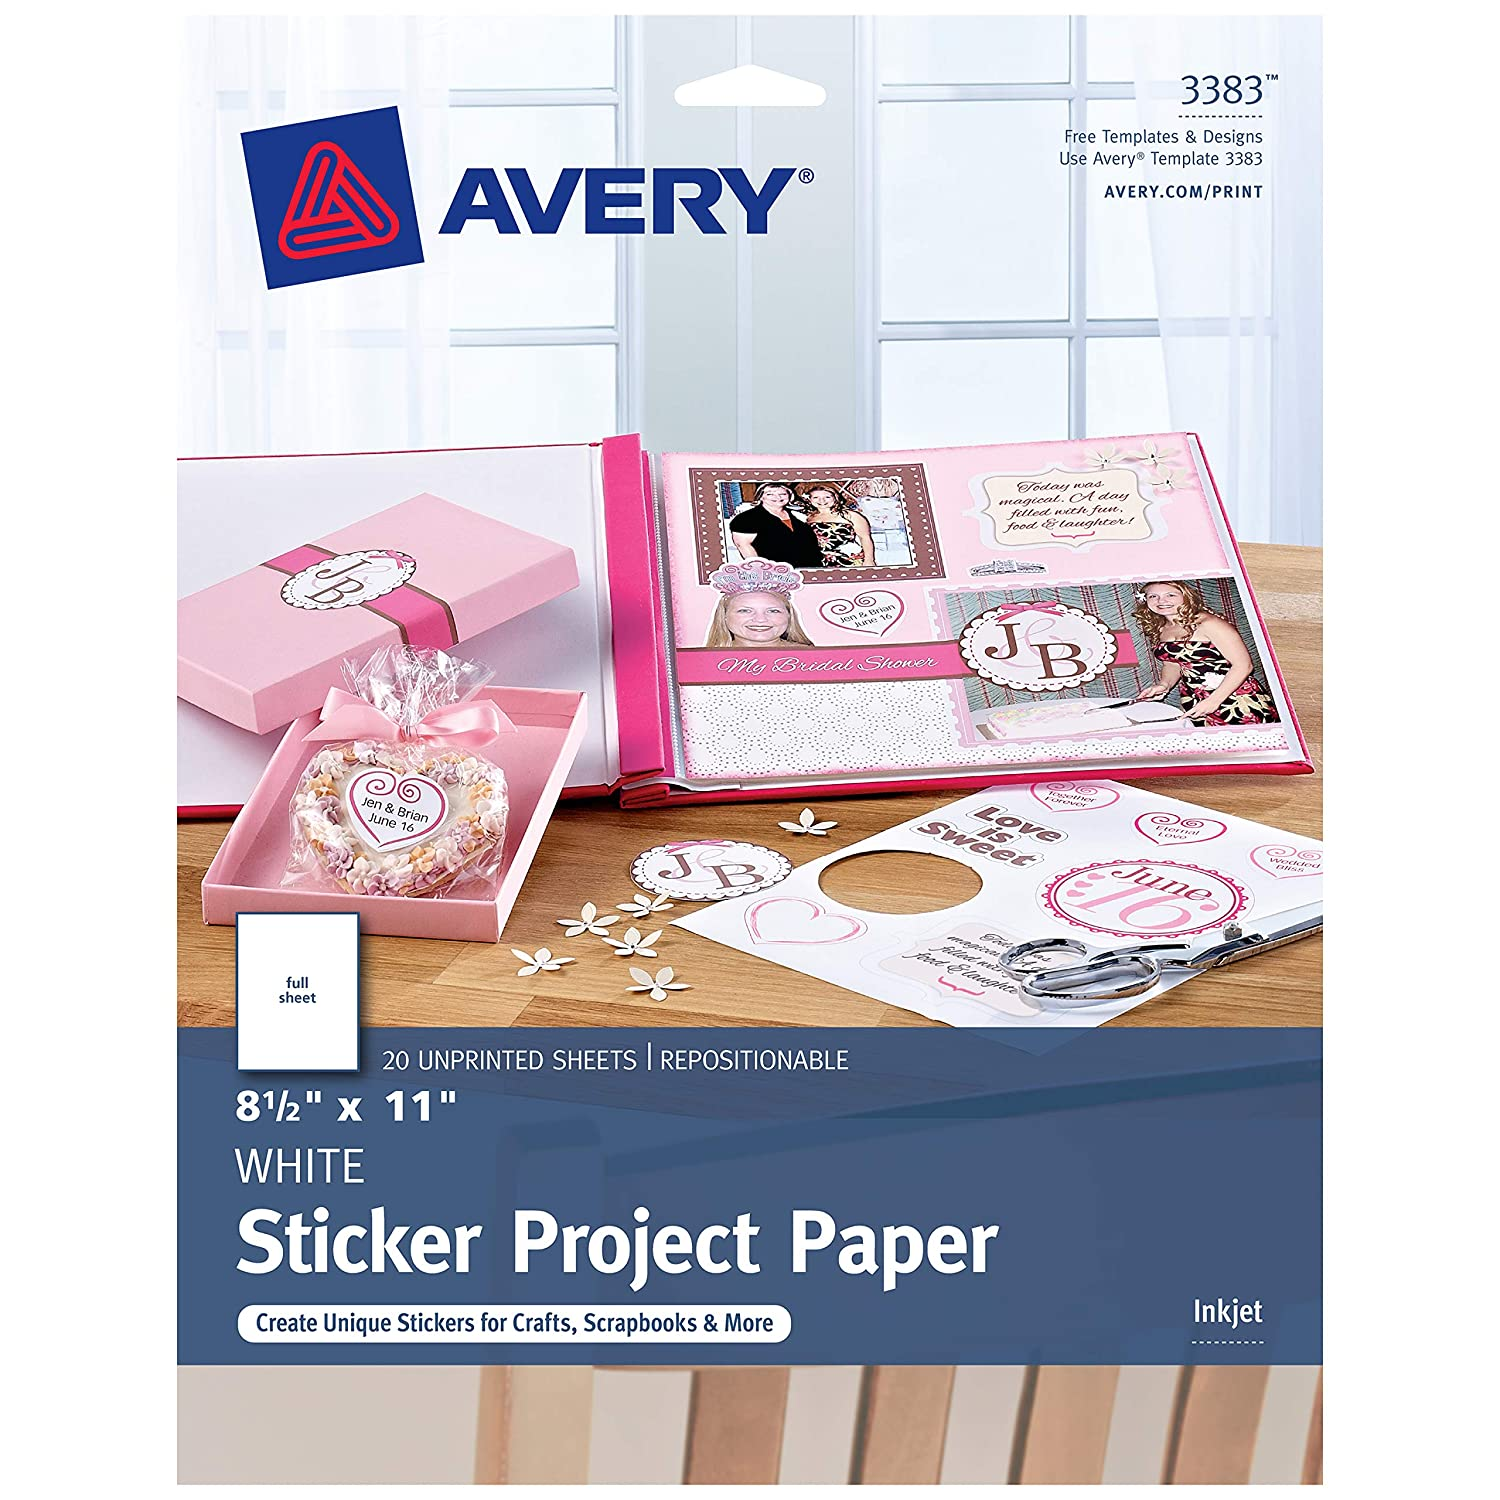 photo relating to Printable Sticker Sheet identified as Avery Printable Sticker Paper, Matte White, 8.5 x 11 Inches, Inkjet Printers, 20 Sheets (44383)